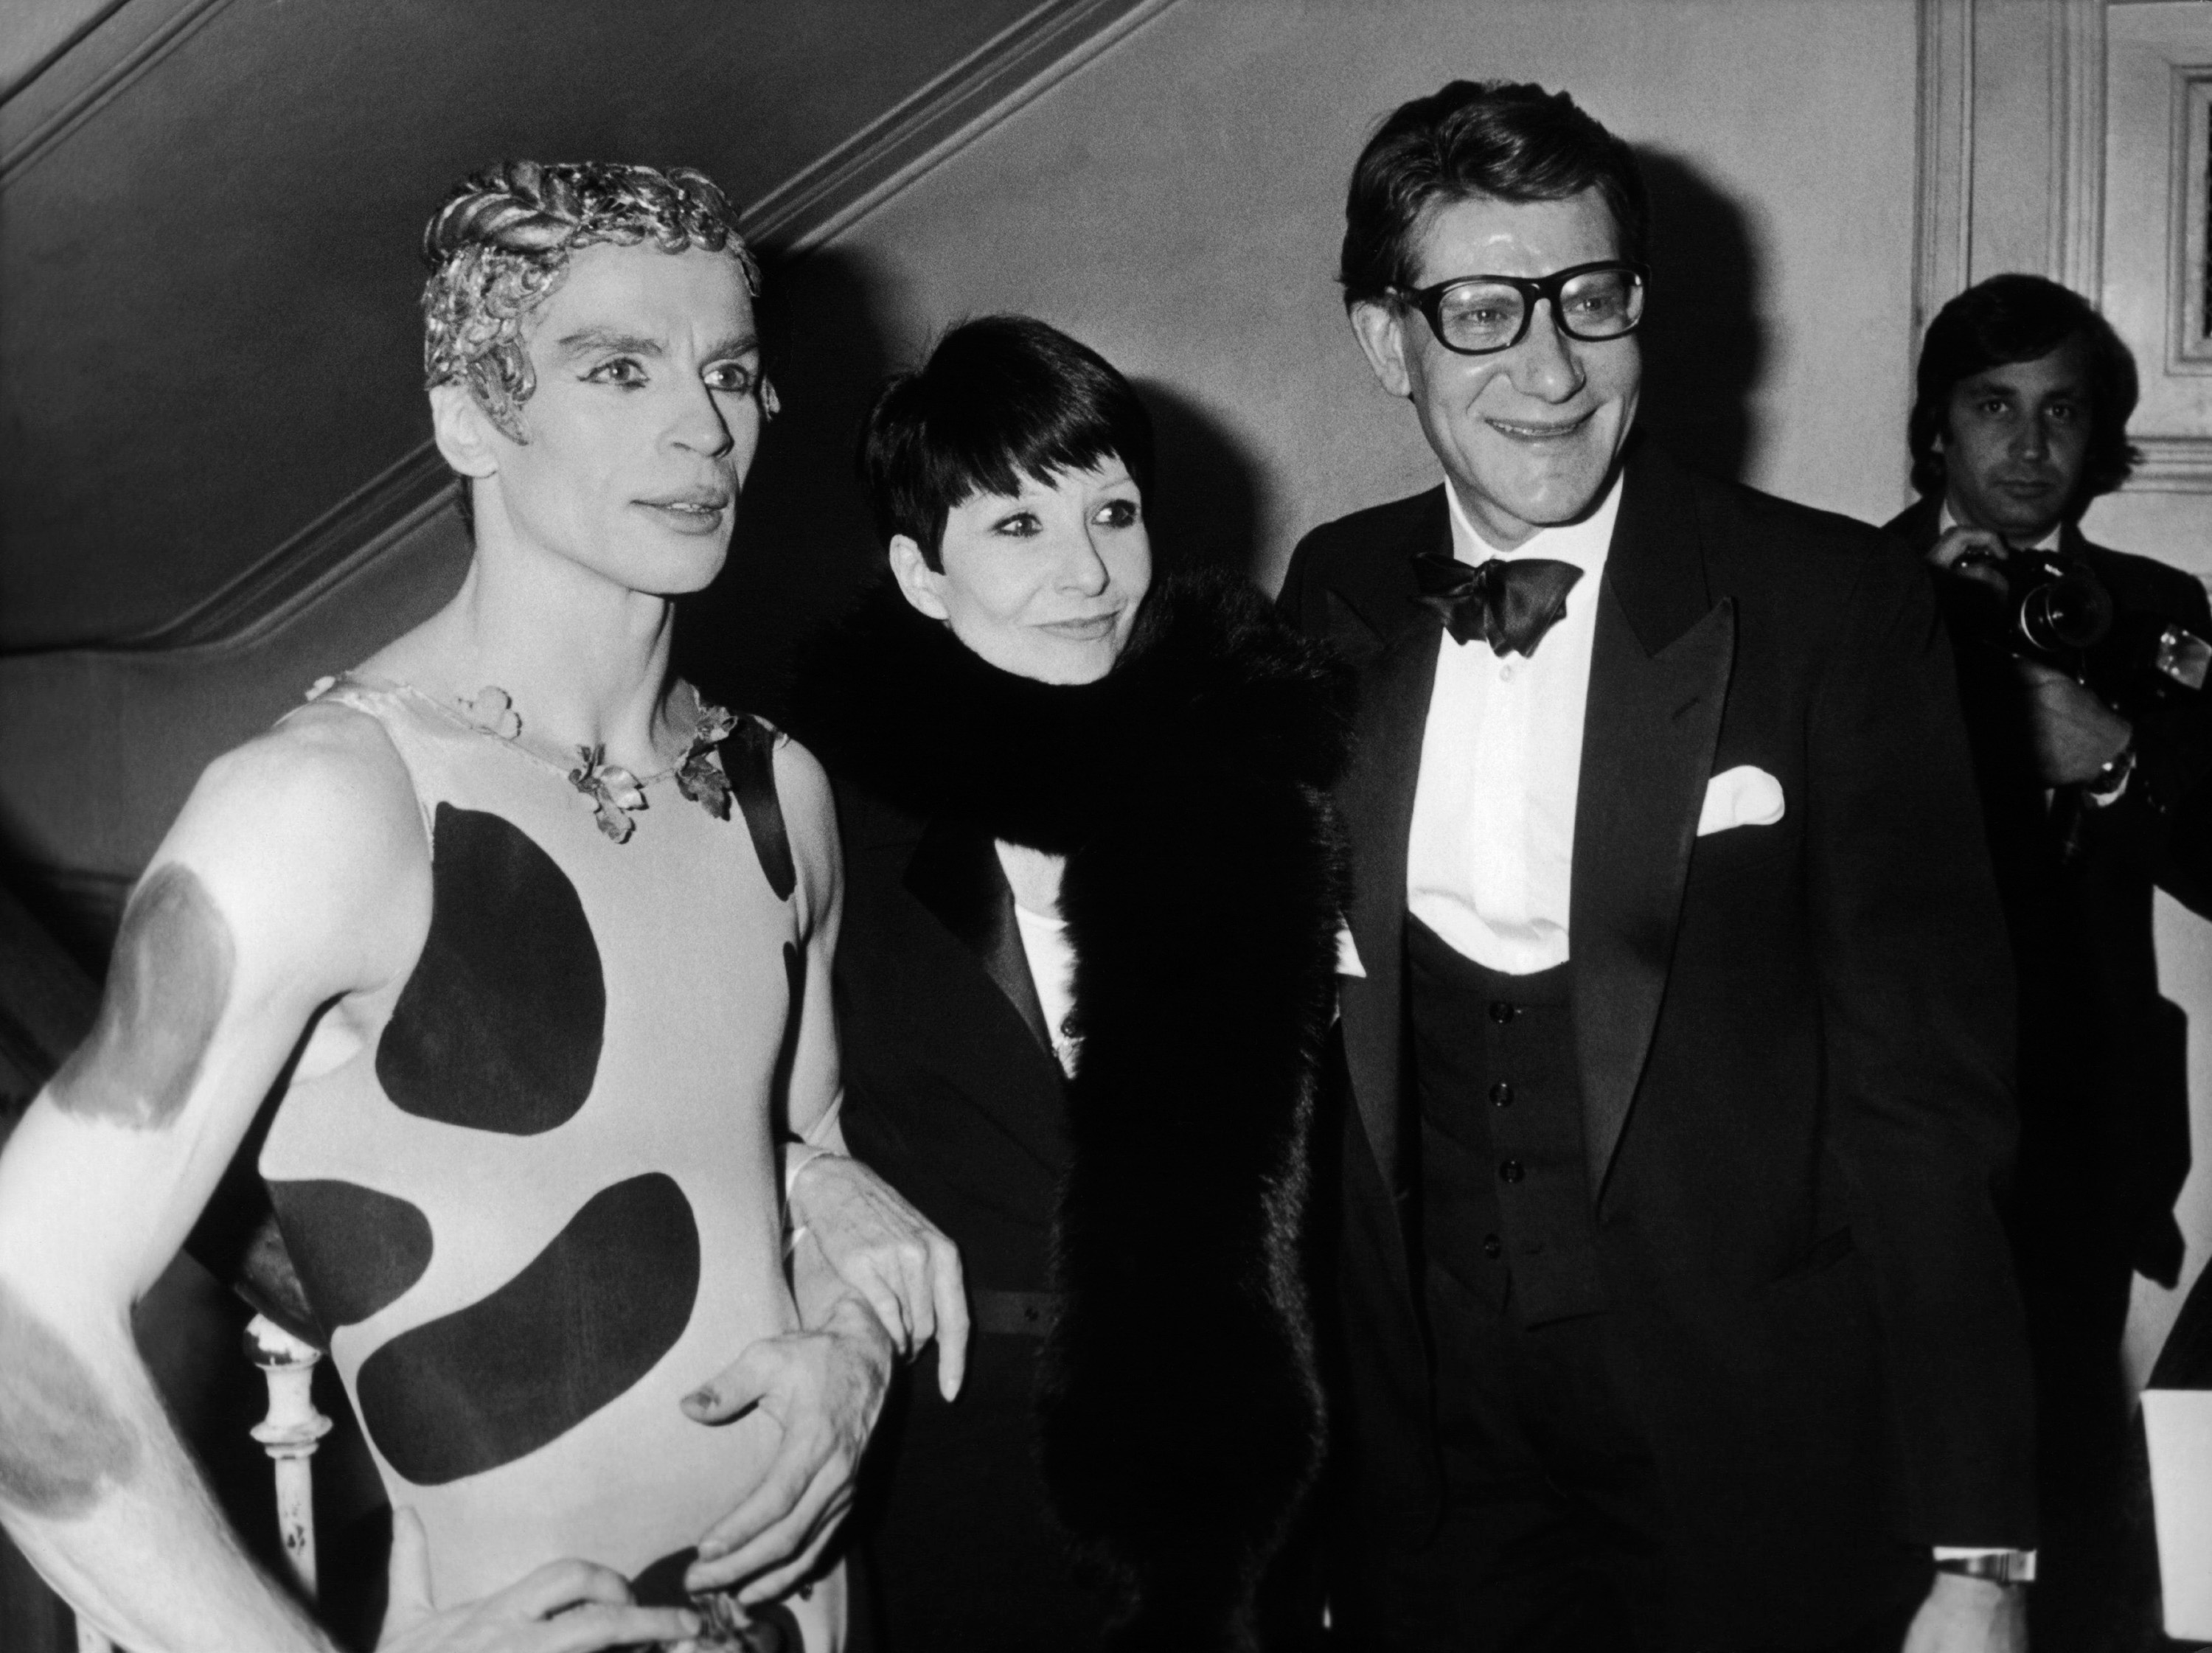 Rudolf Nureyev, Zizi Jeanmaire, and Yves Saint Laurent at the launch of the  fragrance Kouros, Opéra-Comique, Paris, February 23, 1981.